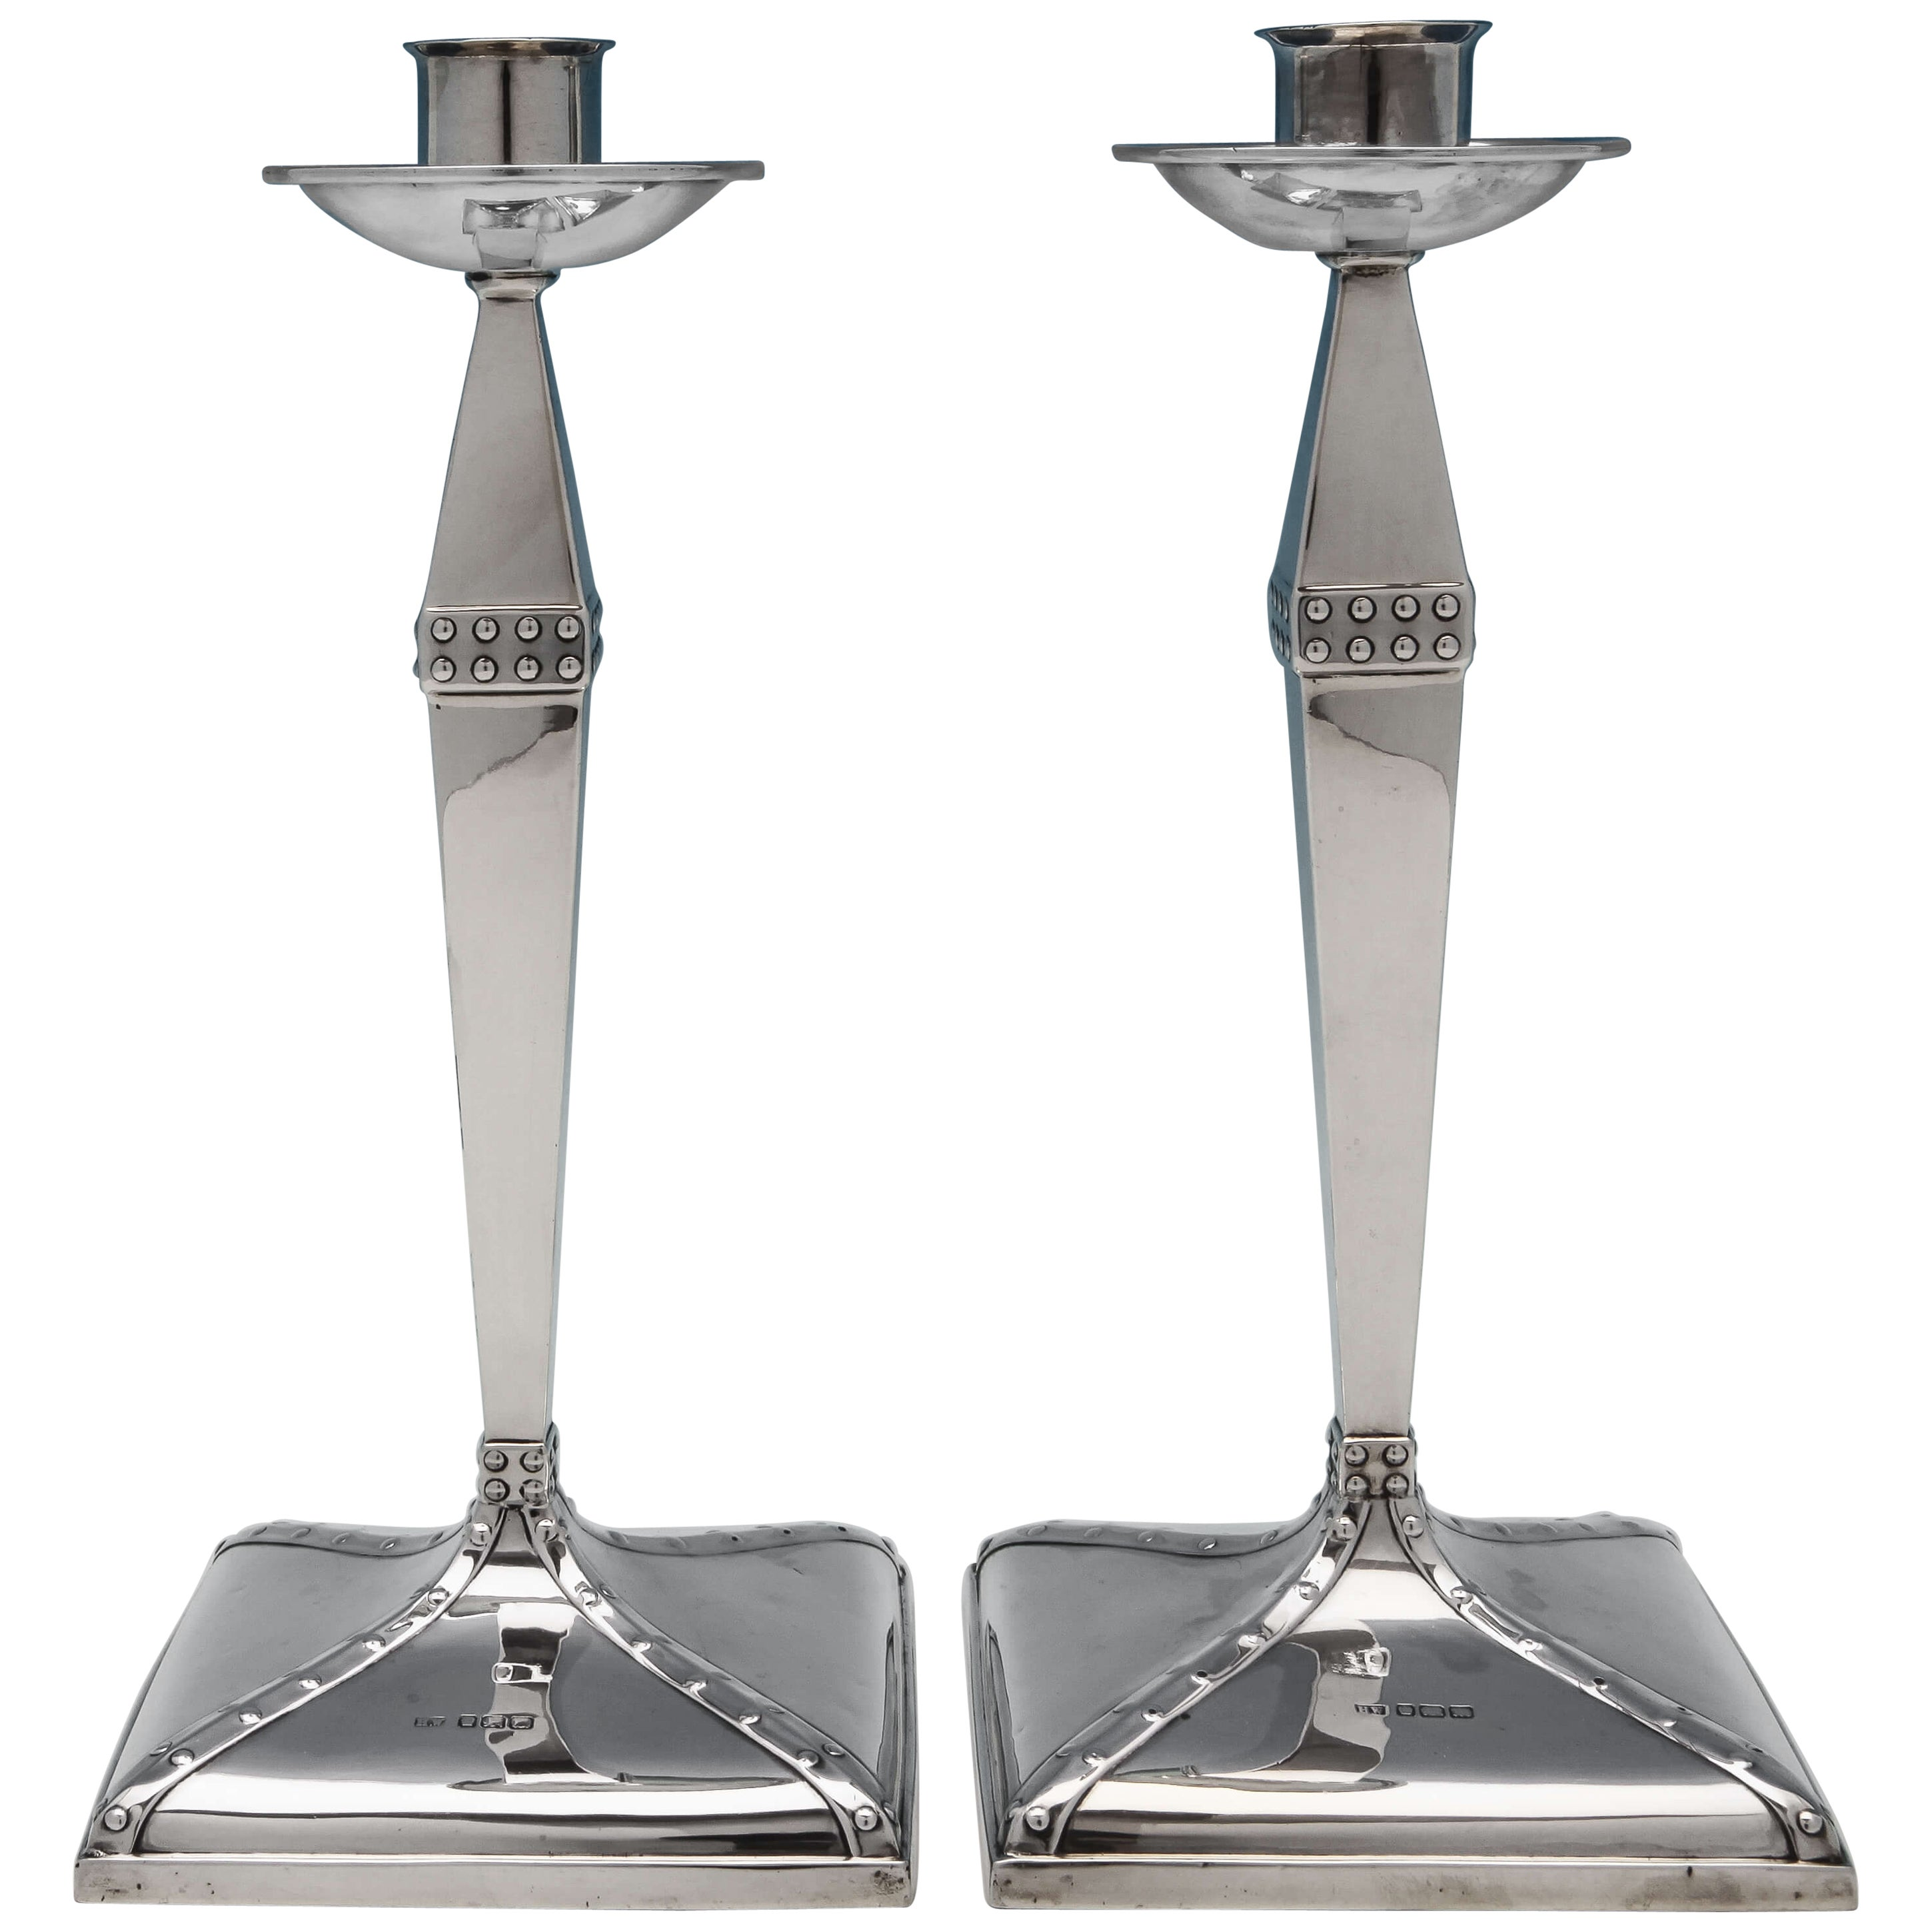 Arts & Crafts Period Sterling Silver Candlesticks With Rivet Detailing from 1904